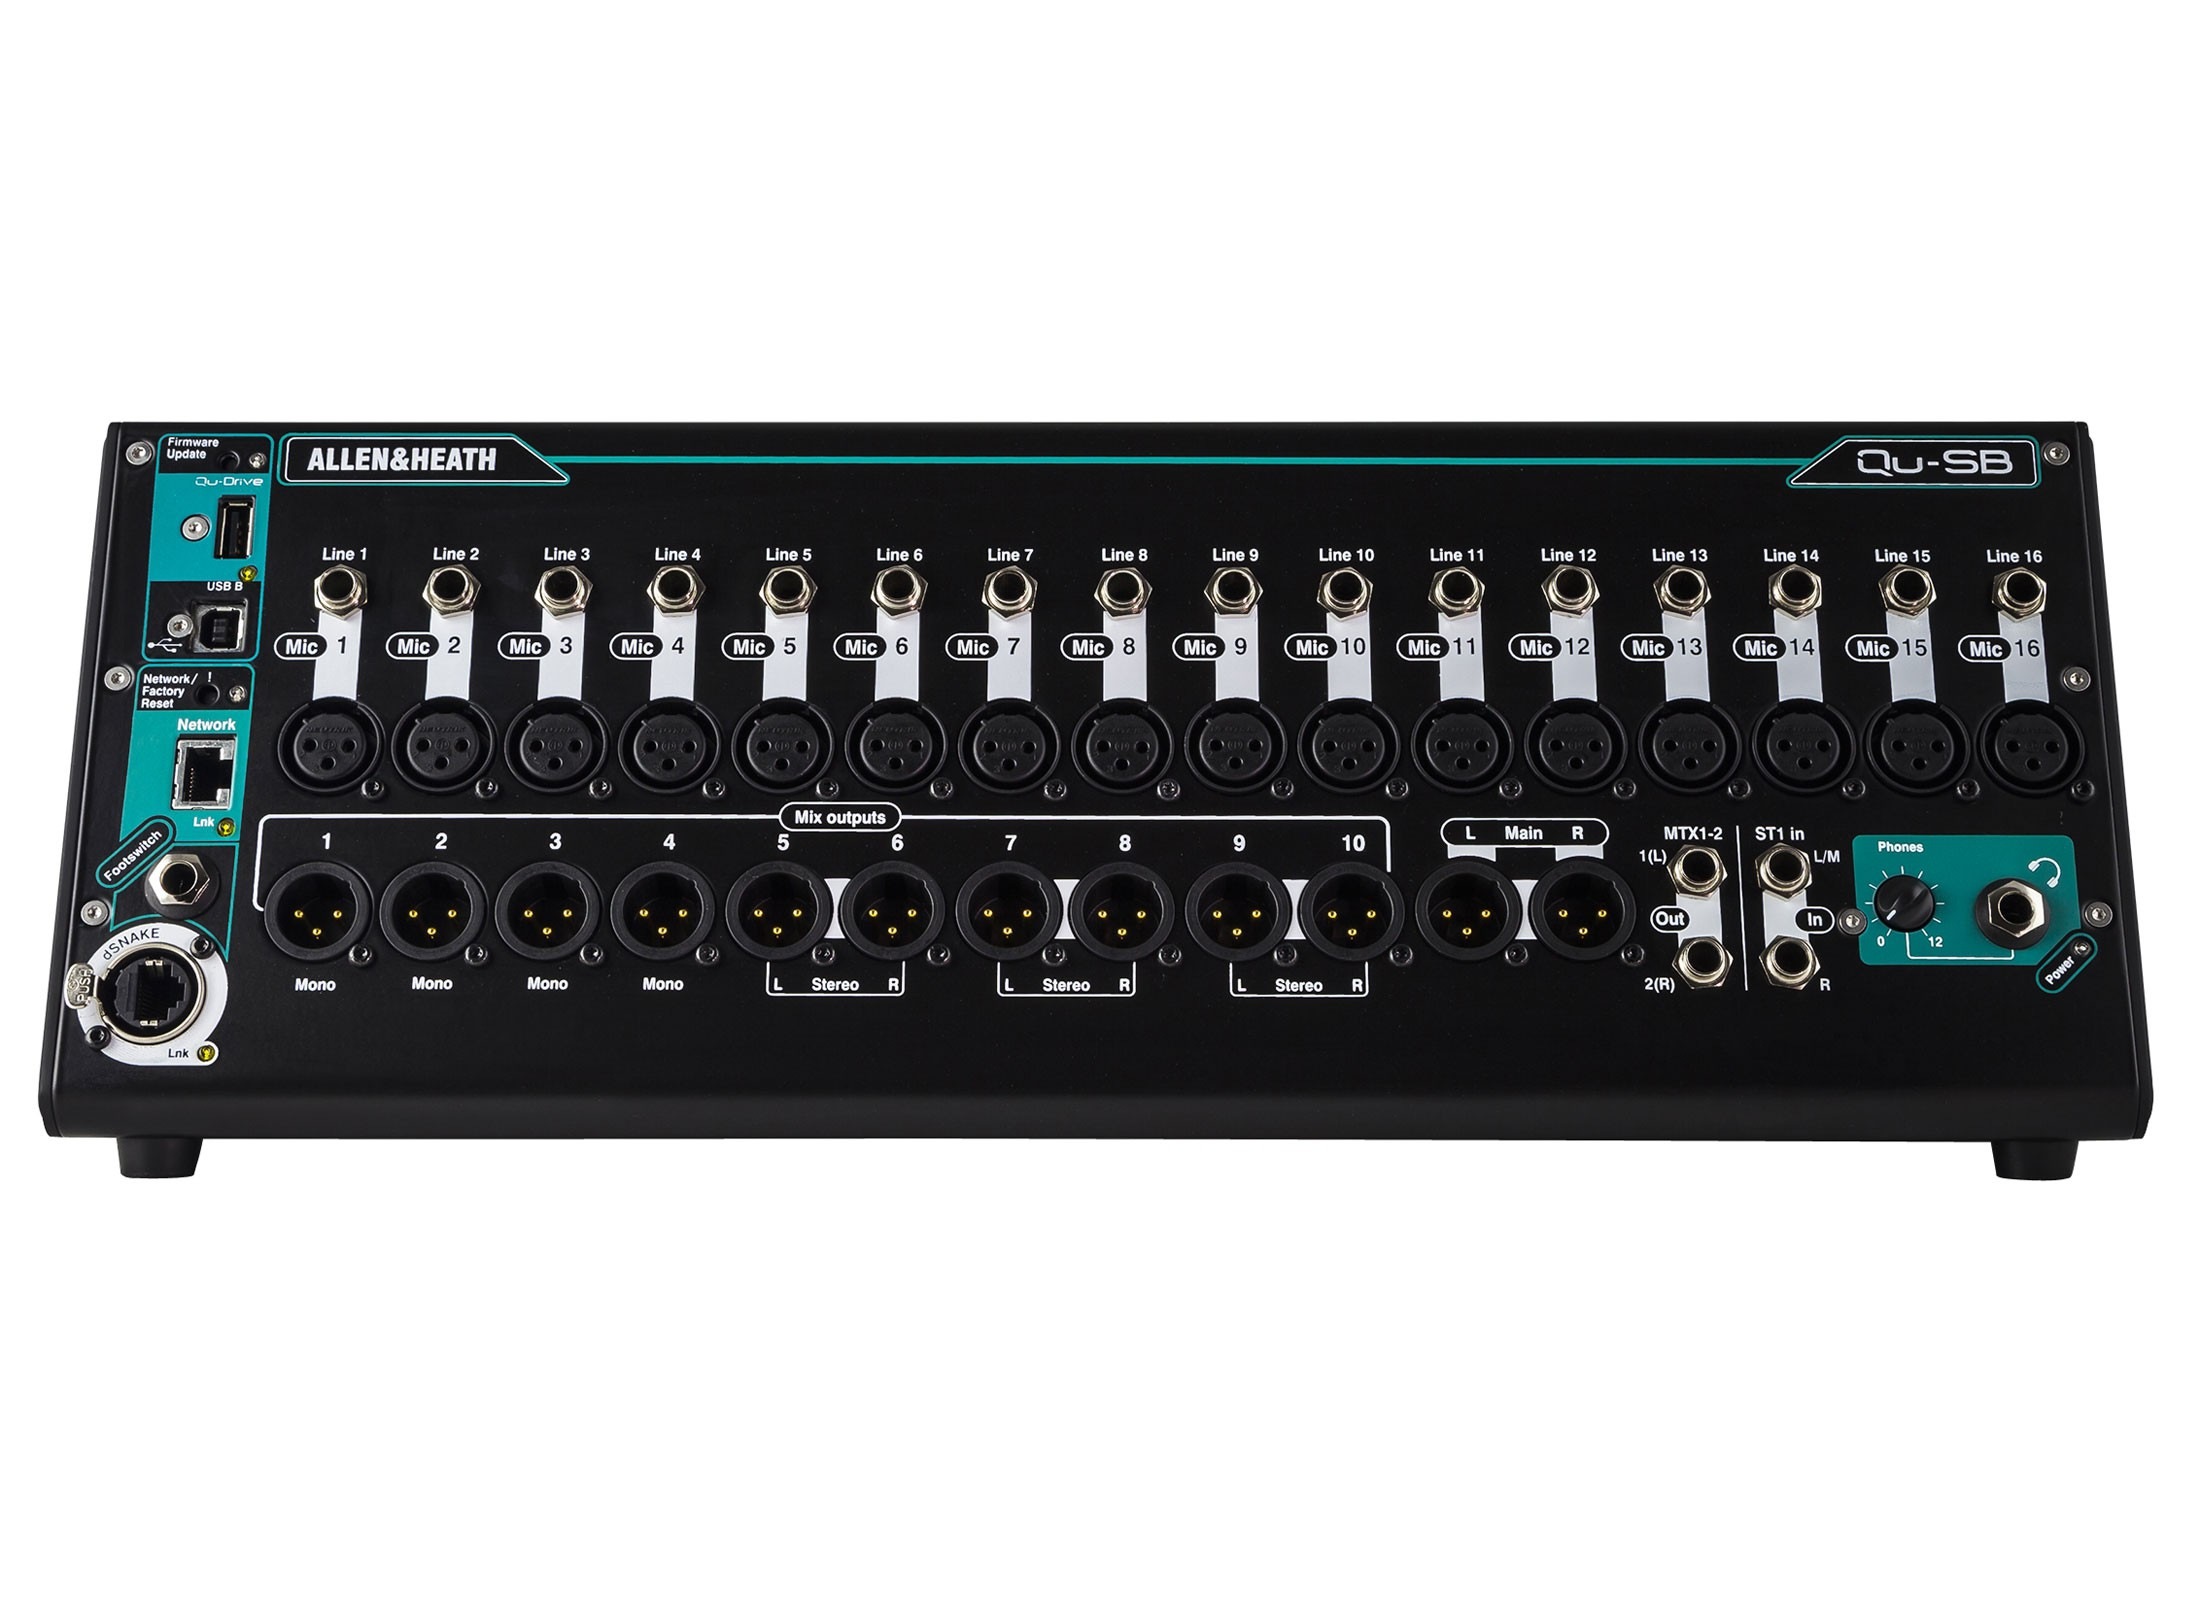 allen heath qu sb digital mixer interface online at low prices at huss light sound. Black Bedroom Furniture Sets. Home Design Ideas